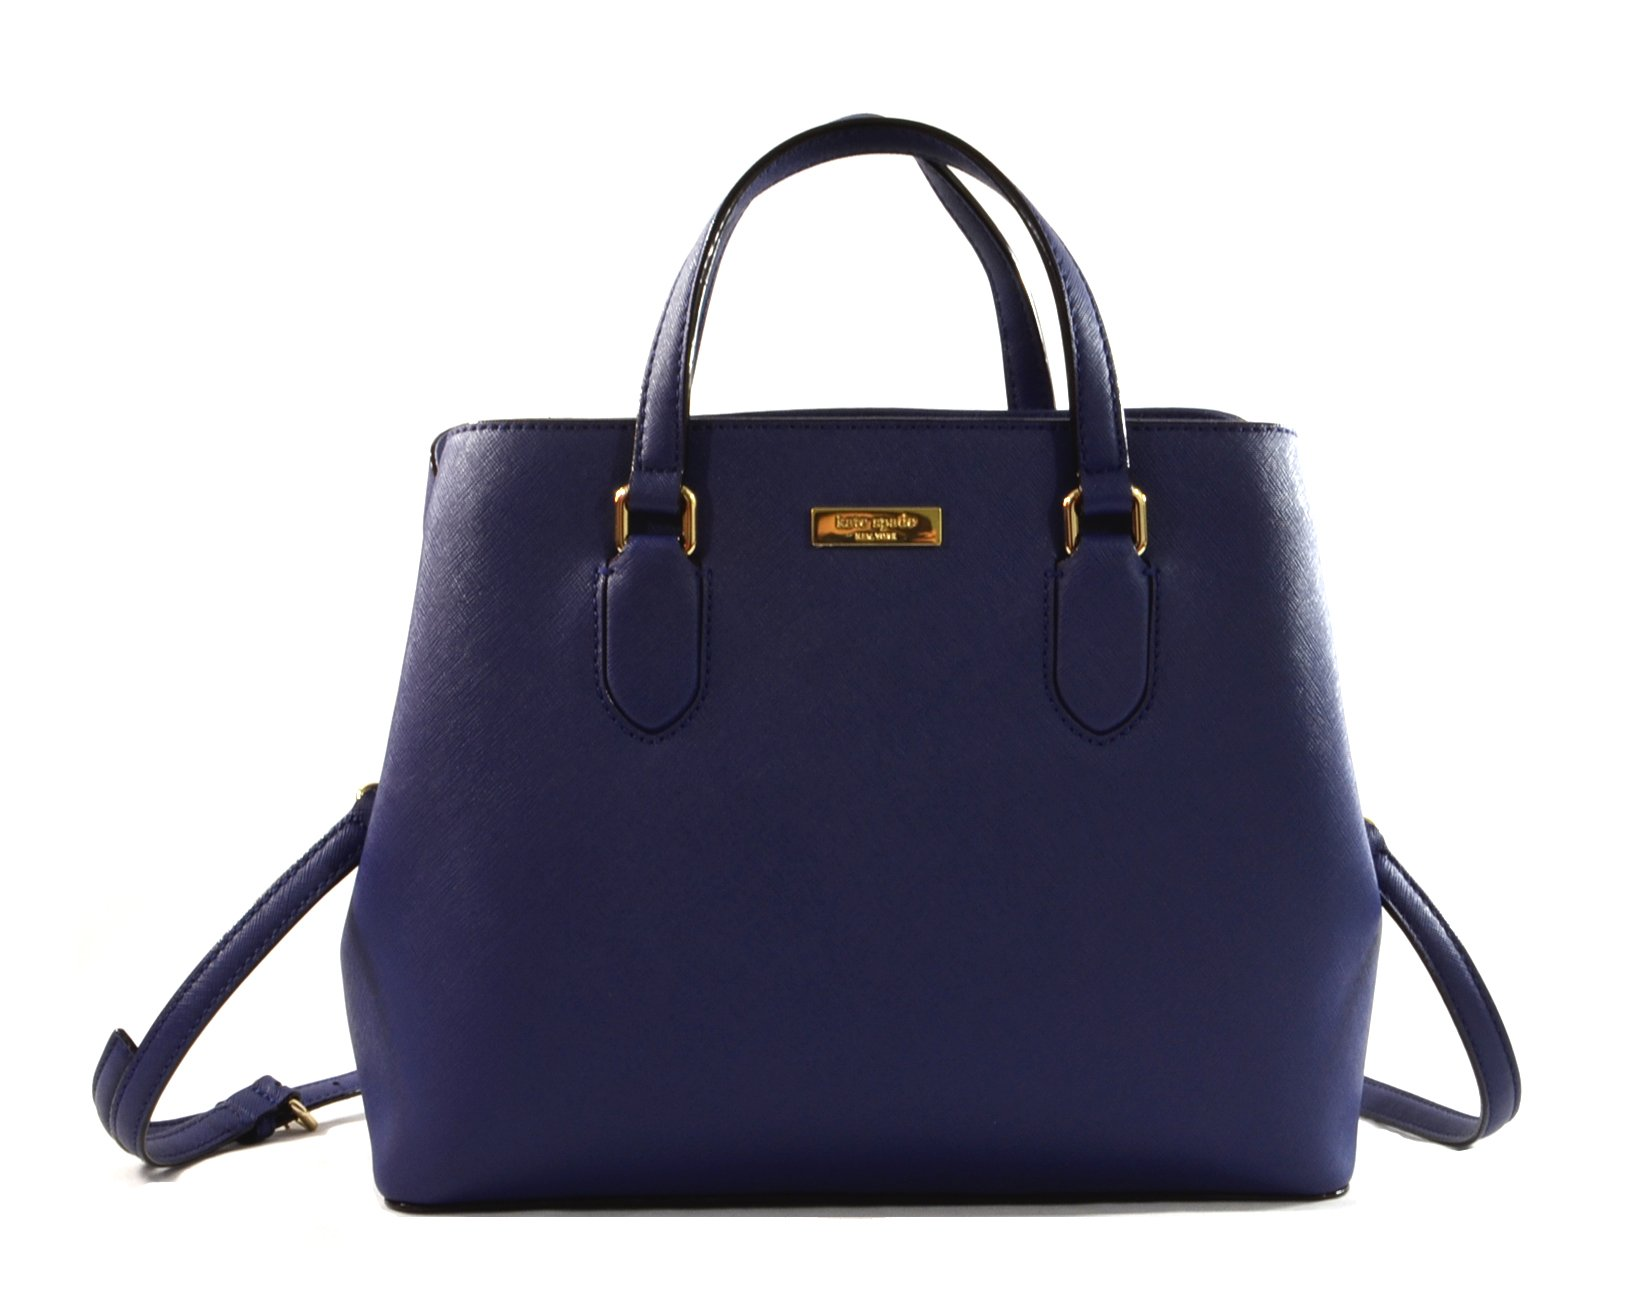 Kate Spade New York Laurel Way Evangelie Saffiano Leather Shoulder Bag Satchel (Oceanic Blue) by Kate Spade New York